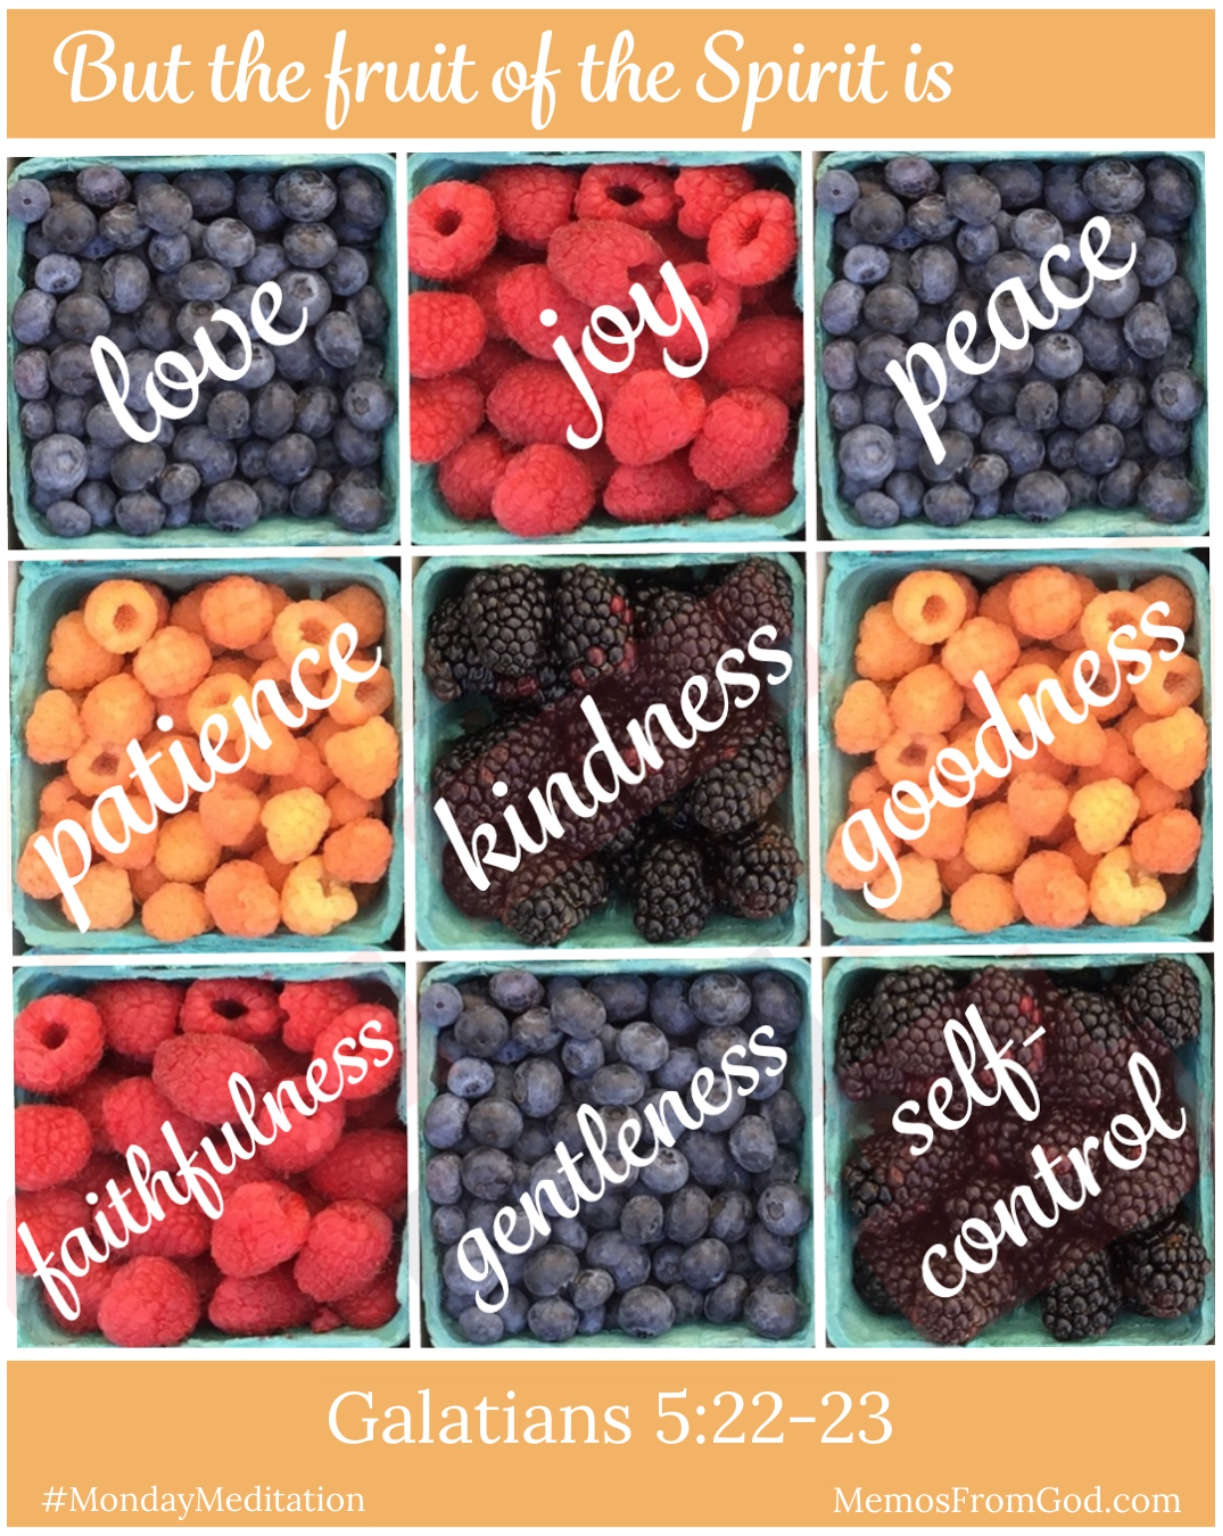 The top view of nine pint boxes of berries, including blueberries, blackberries, red raspberries and golden raspberries. Caption: But the fruit of the Spirit is love, joy, peace, patience, kindness, goodness, faithfulness, gentleness, and self-control. Galatians 5:22-23